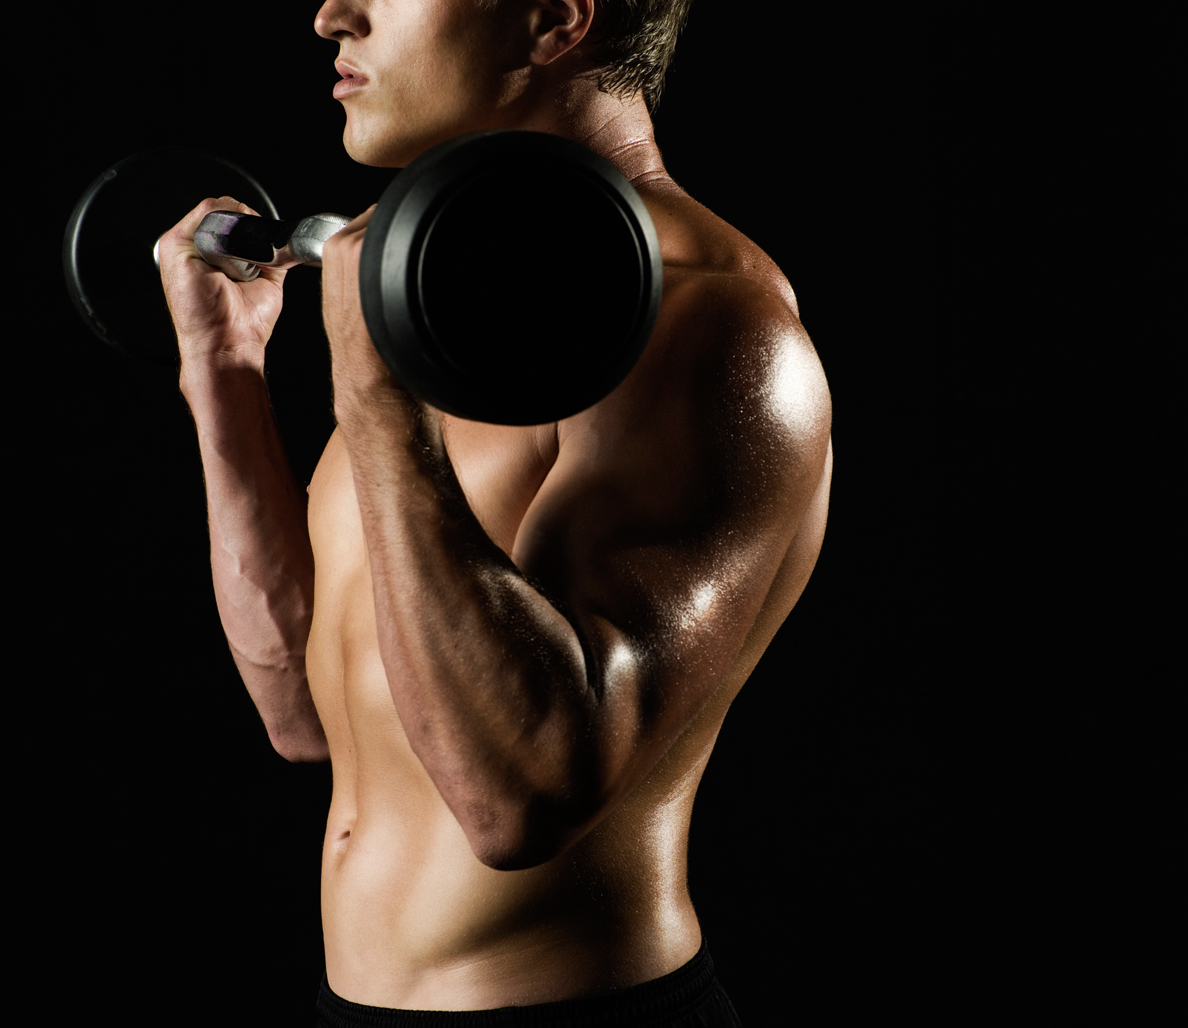 The Anti-Aging Workout recommendations